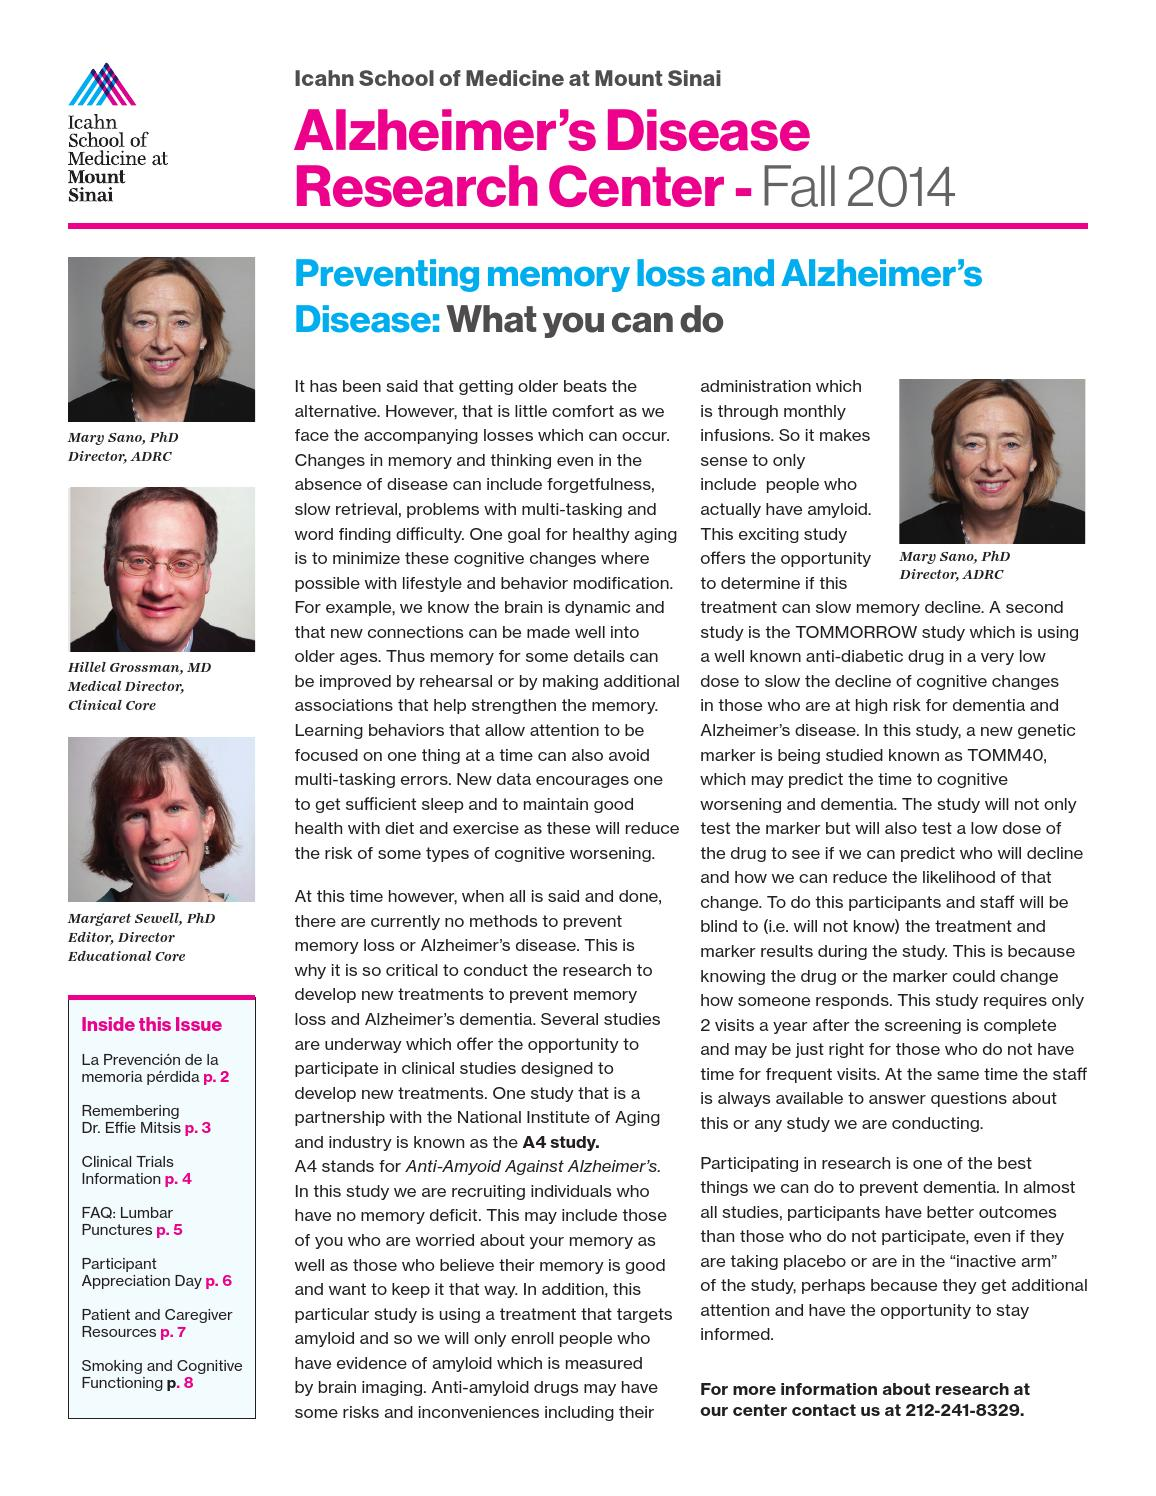 ADRC Newsletter - Fall 2014 by Mount Sinai Health System - issuu